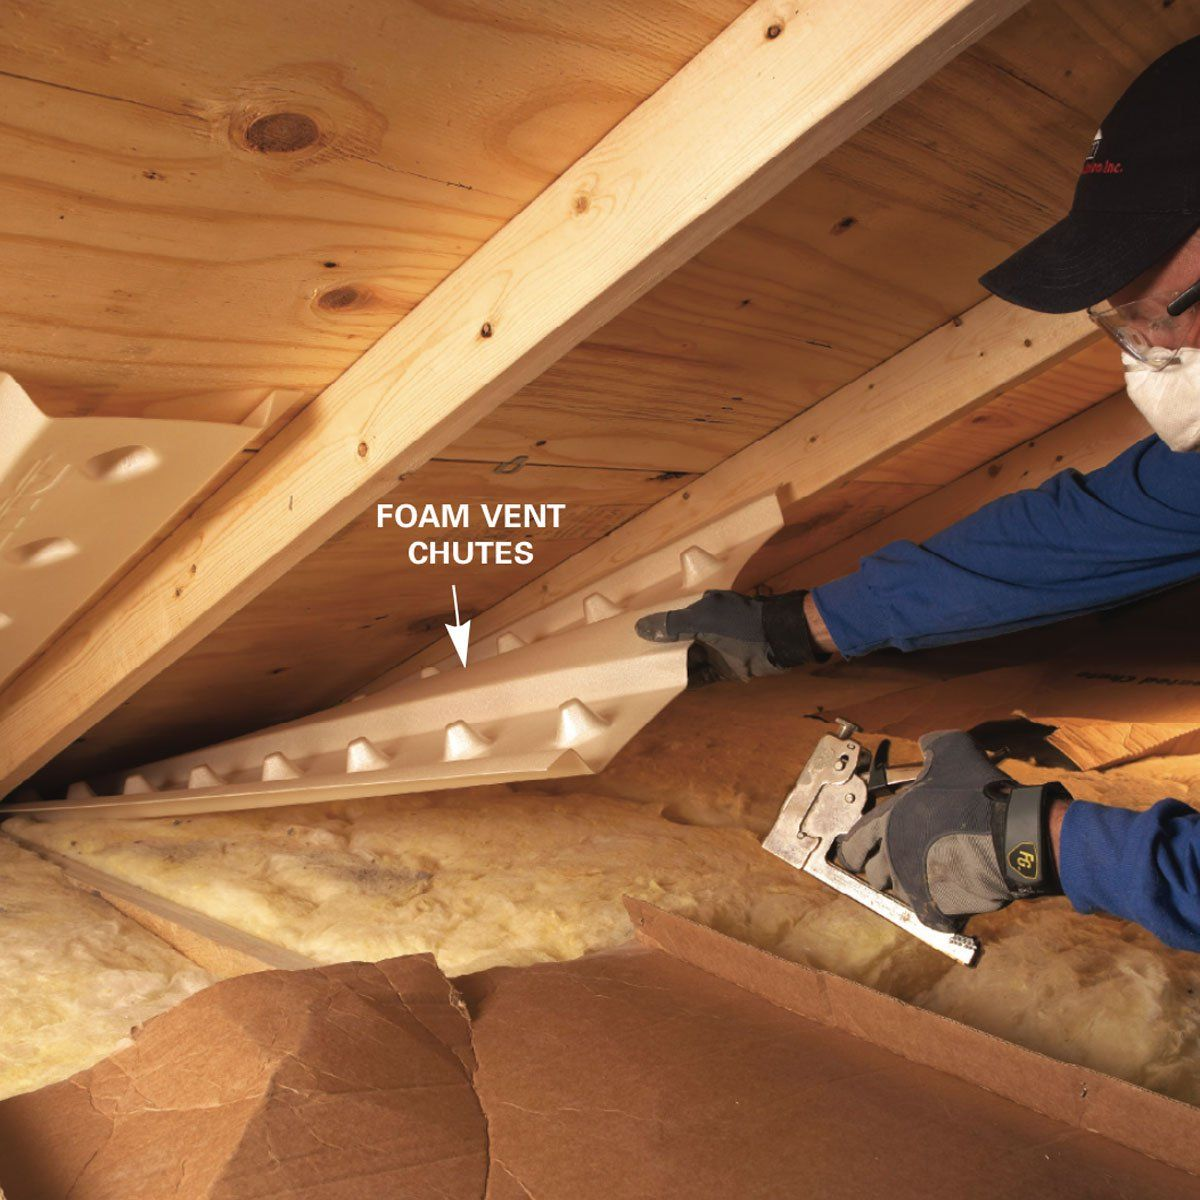 Install Baffles In Attics At The Soffit To Assure Proper Ventilation For Attic And Roof Attic Ventilation Attic Renovation Attic Remodel